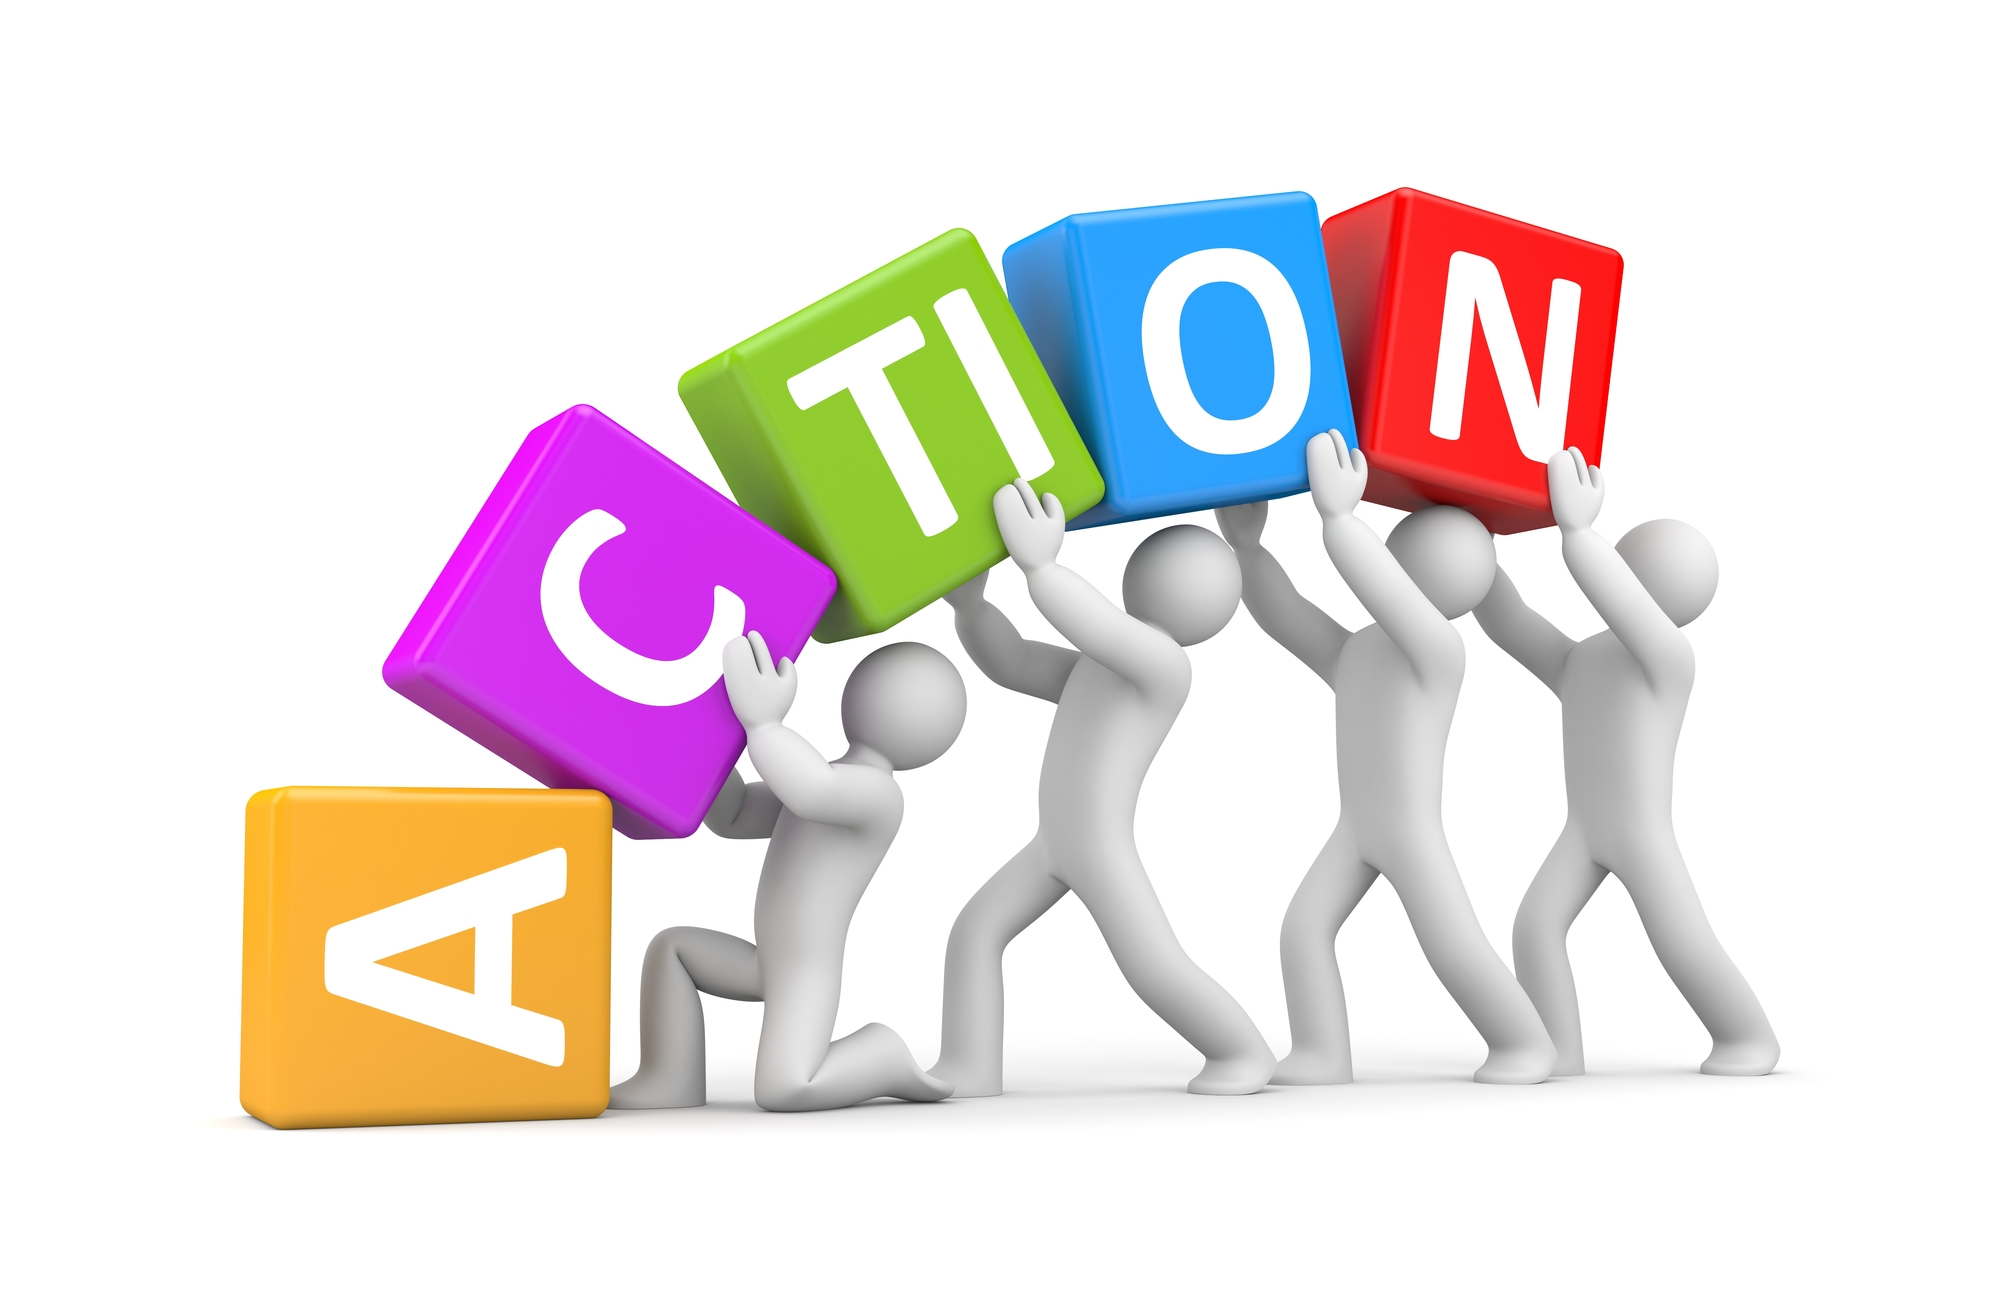 Action clipart take action. How many people do